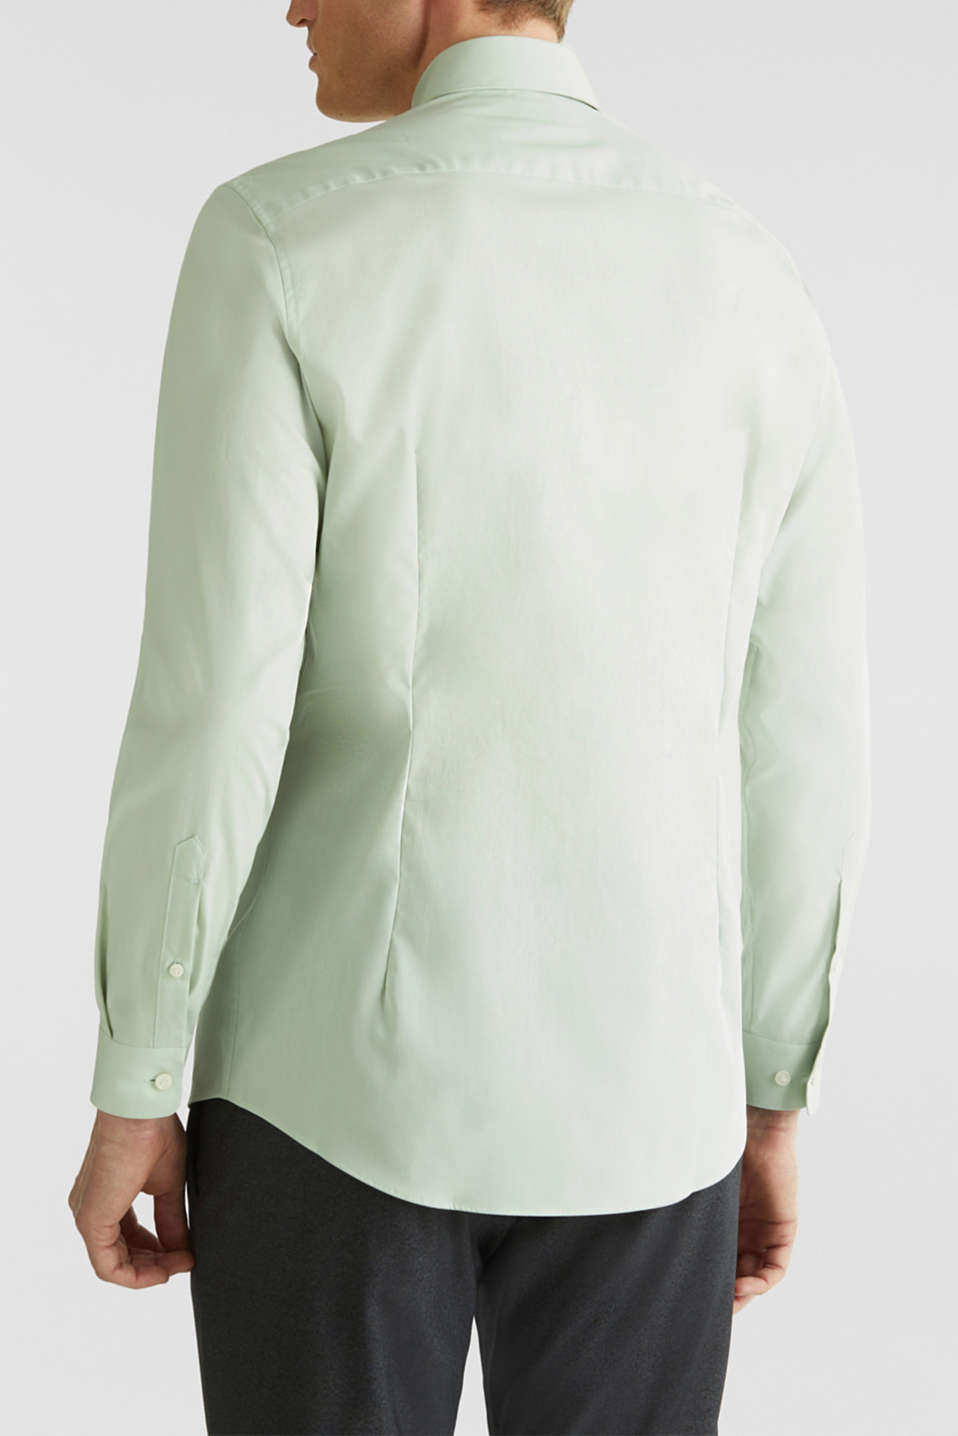 Shirt with mechanical stretch, 100% cotton, LIGHT GREEN 5, detail image number 3